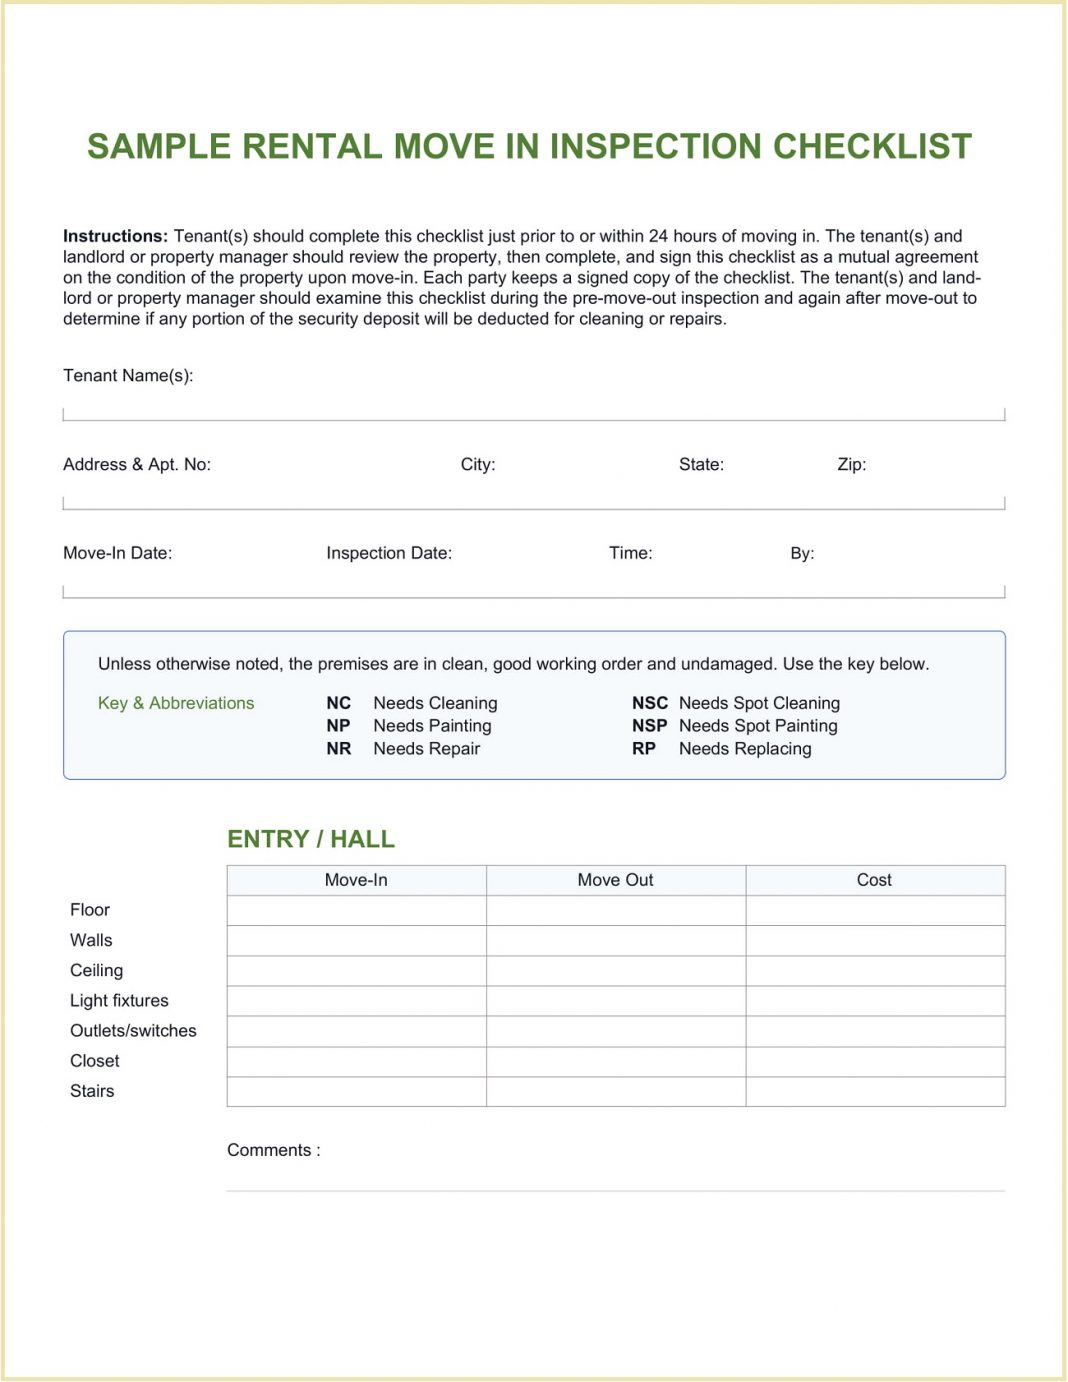 Sample Rental Move In Checklist Template Word Property Inspection Editable Move-in Doc  Large